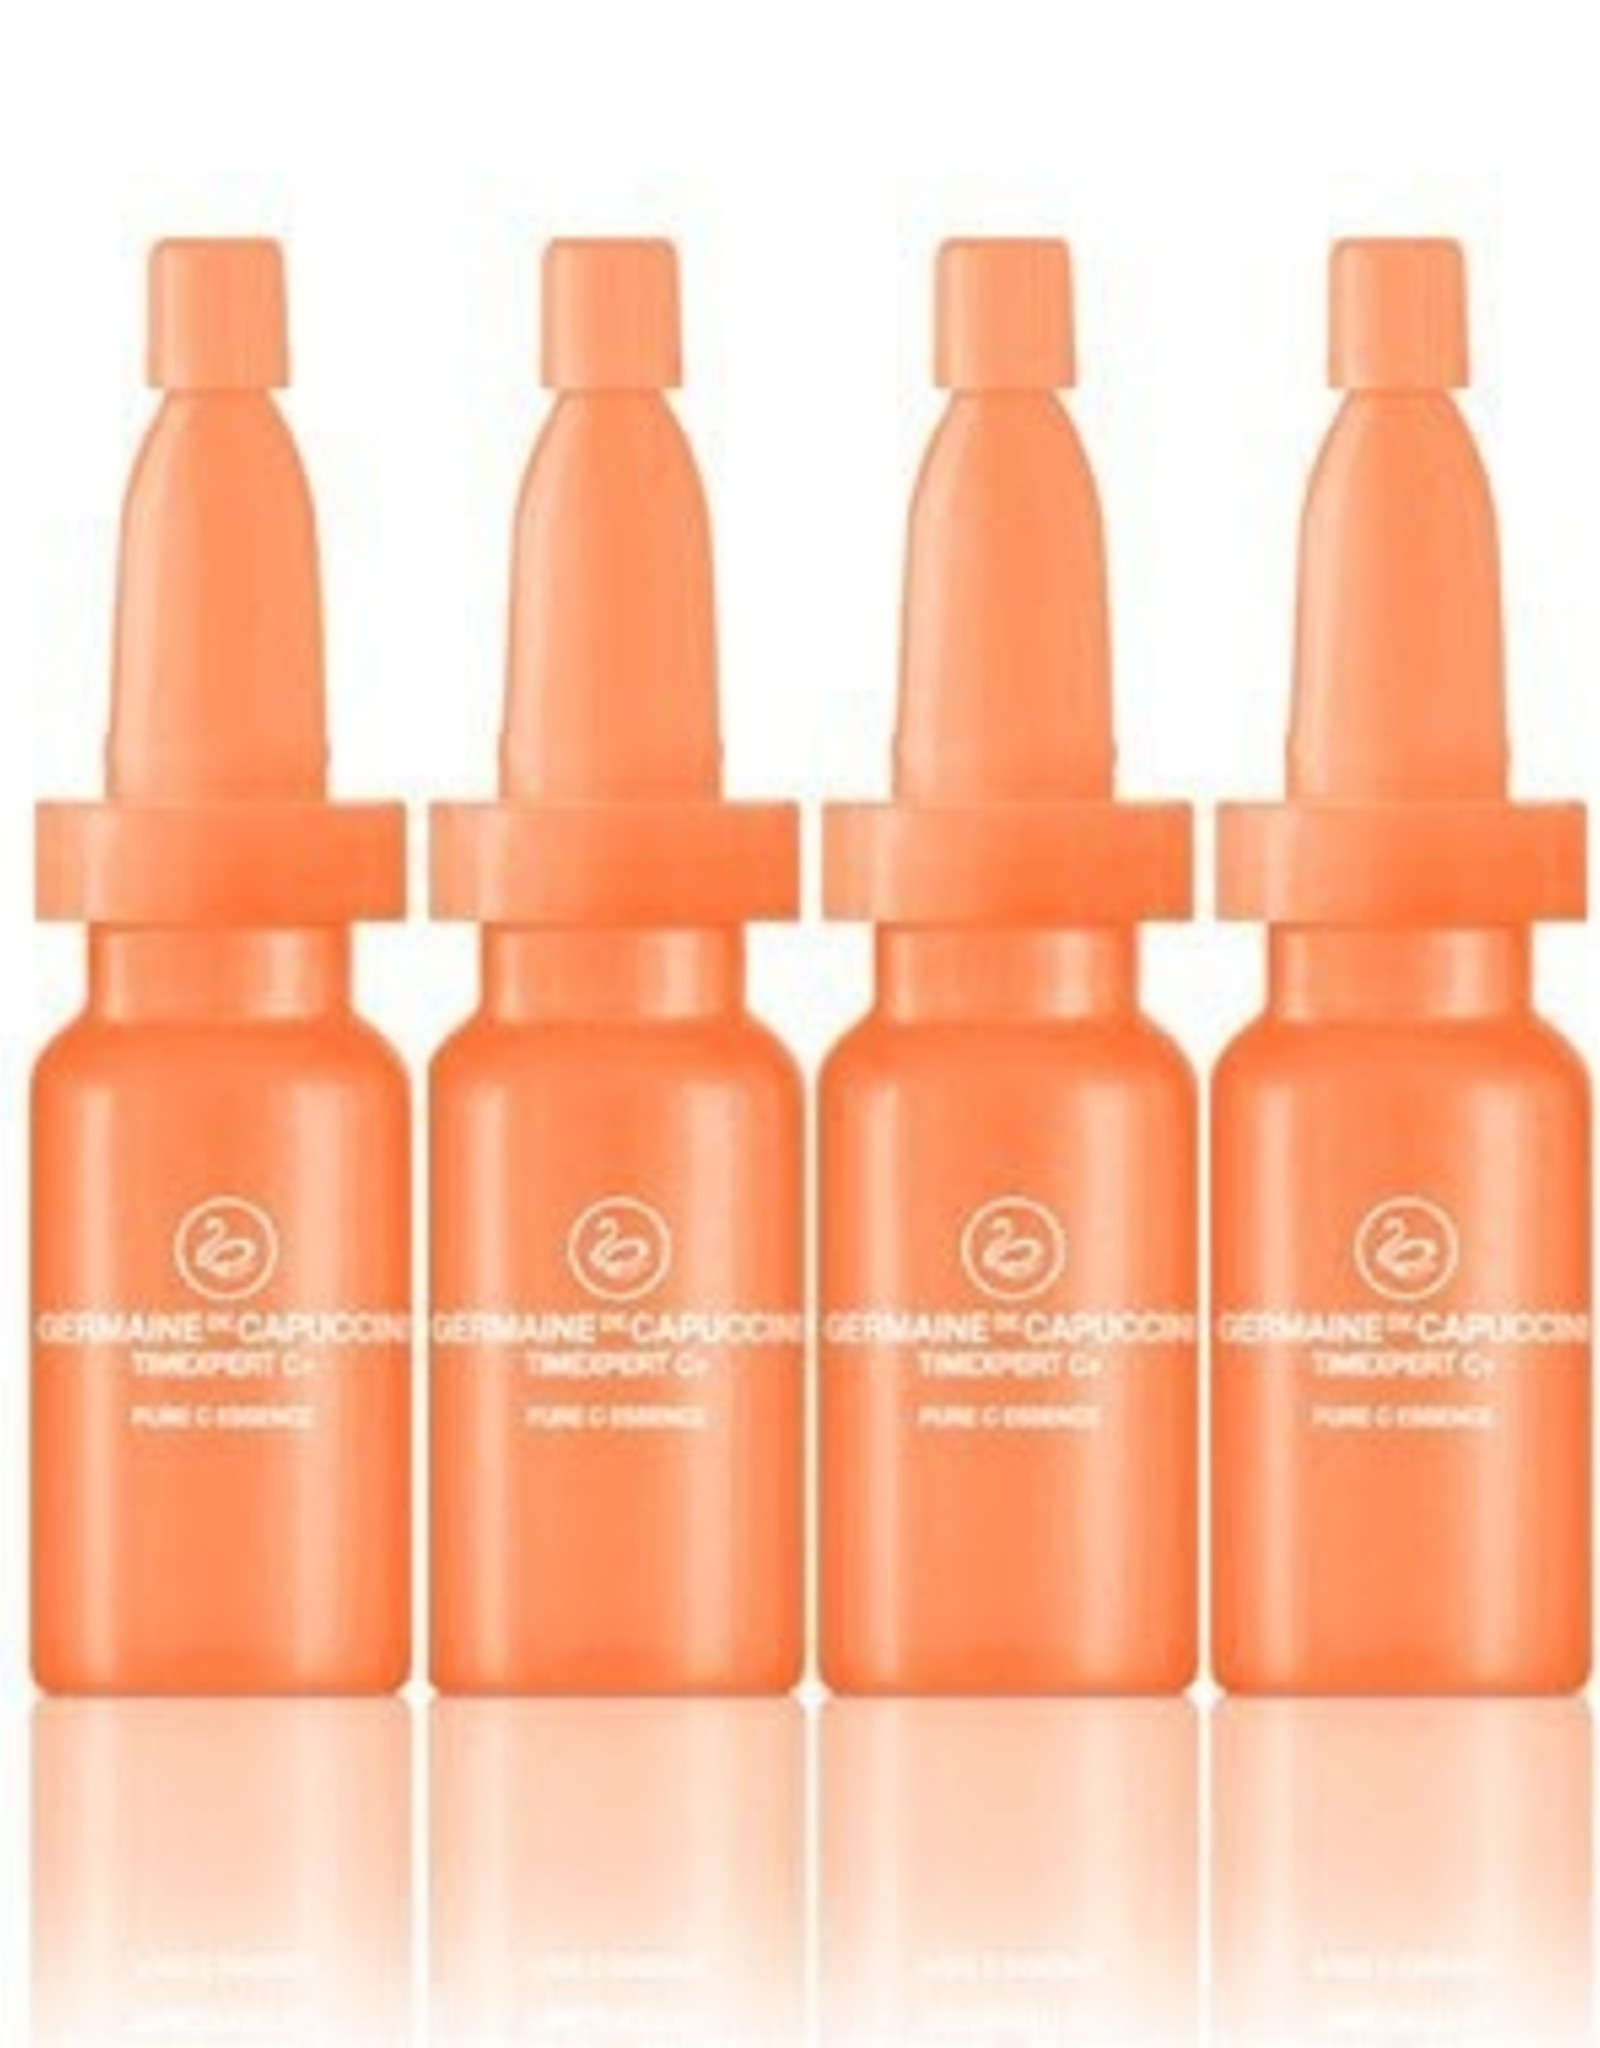 Pure C Essence Serum Vit C